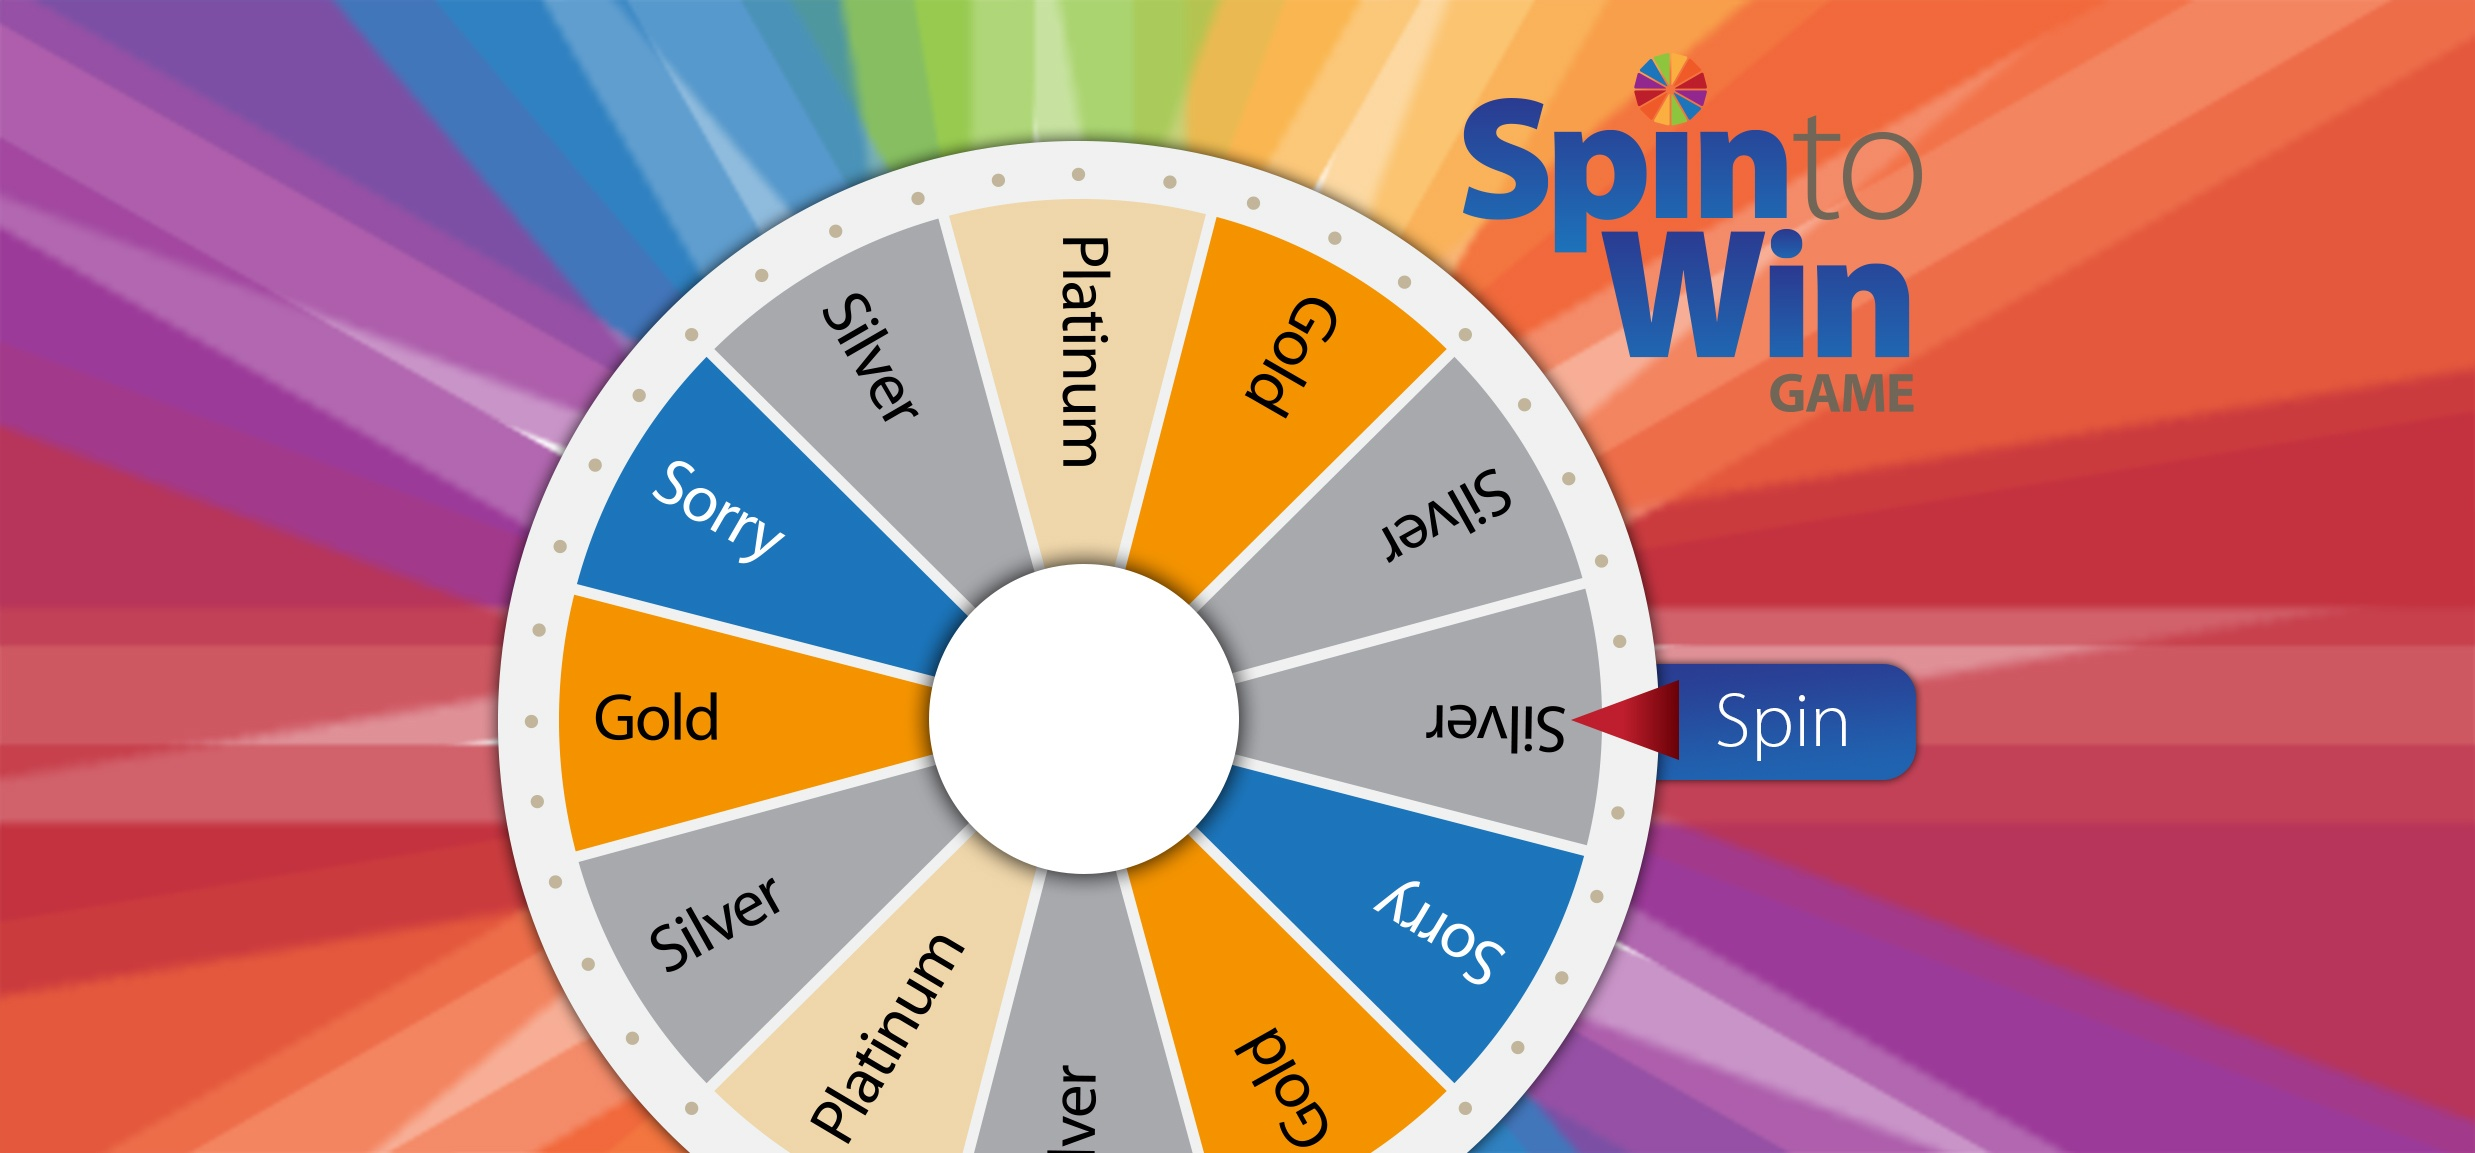 Spin to Win Image.jpg